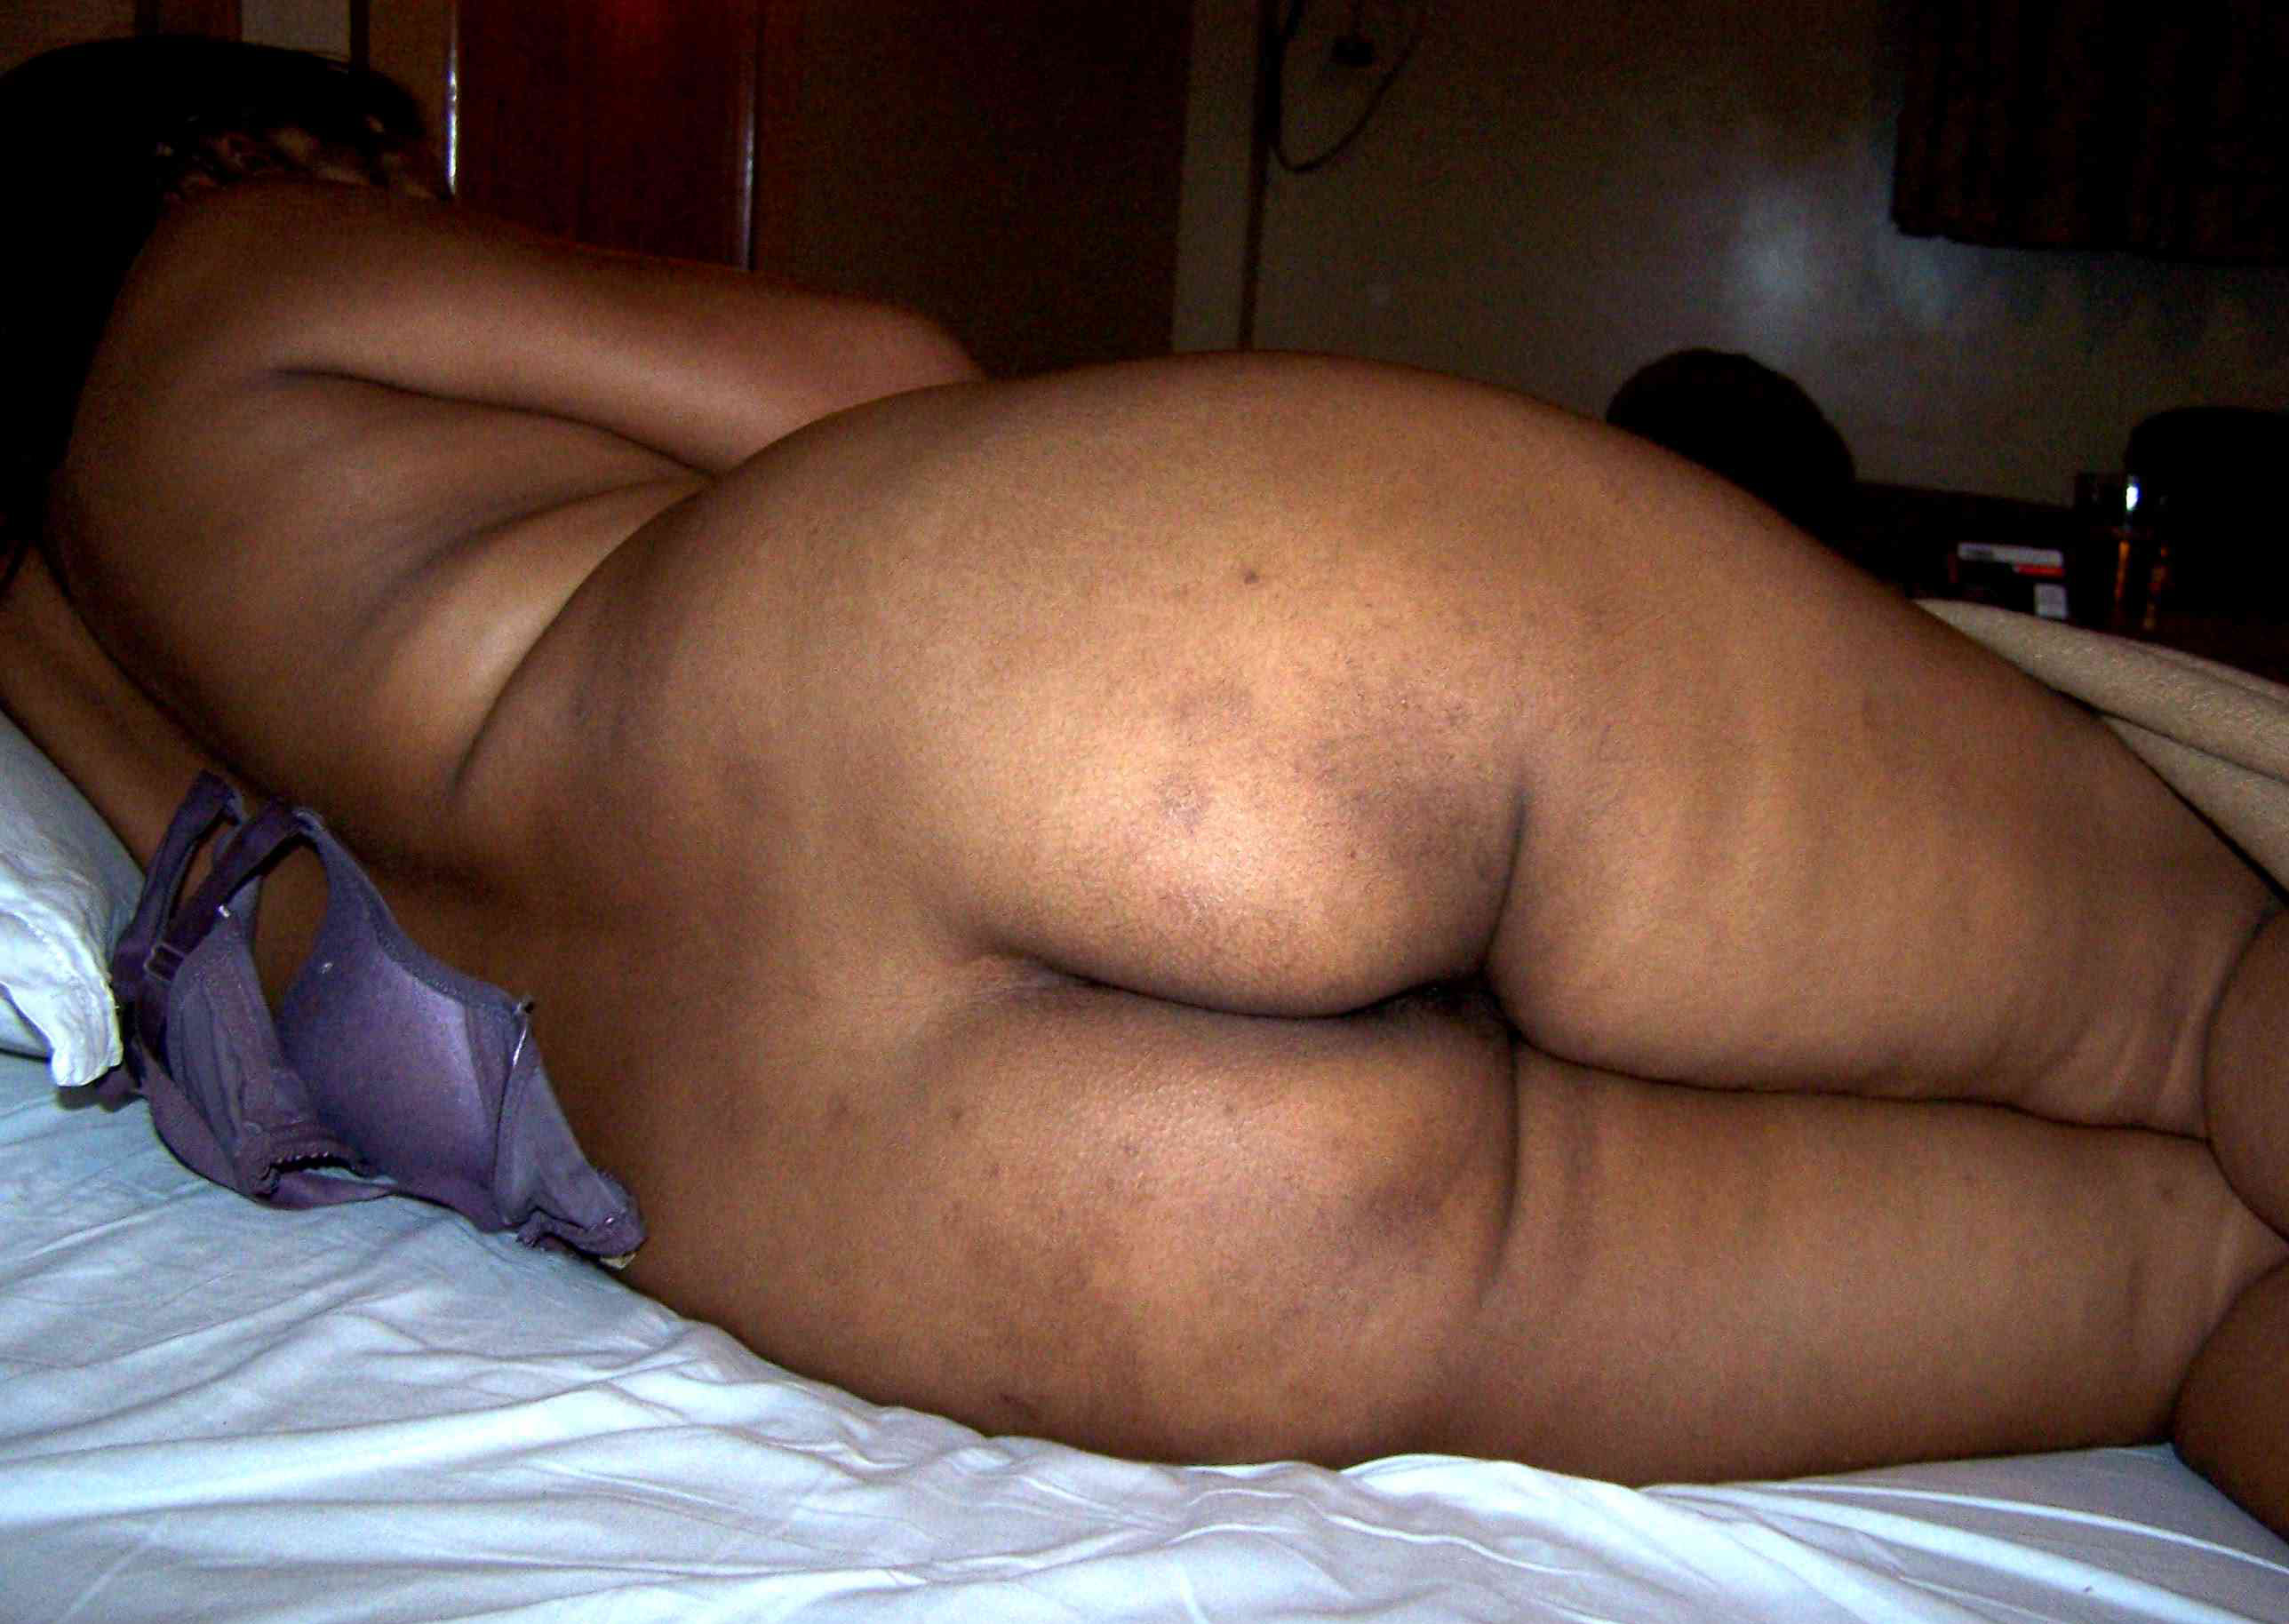 Big ass indian showing porn images